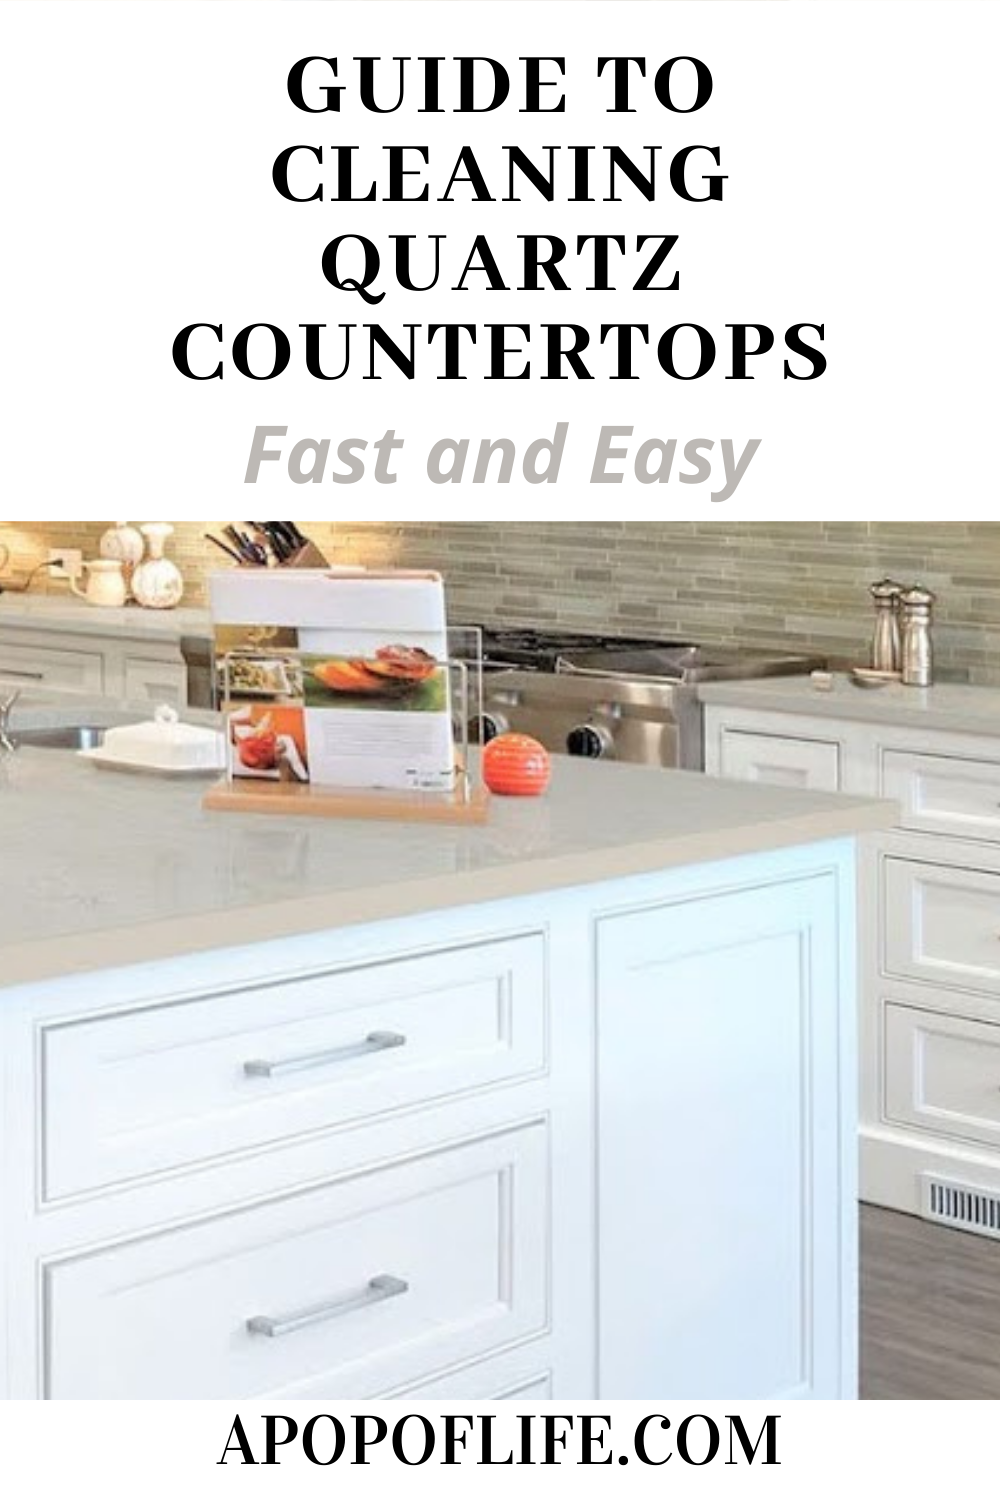 cleaning quartz countertops, cleaning quartz sinks, quartz kitchen countertops, how to clean quartz countertops, kitchen cleaning hacks, bathroom cleaning tips, bathroom countertop cleaning, spring cleaning checklist, deep clean house, home maintenance tips